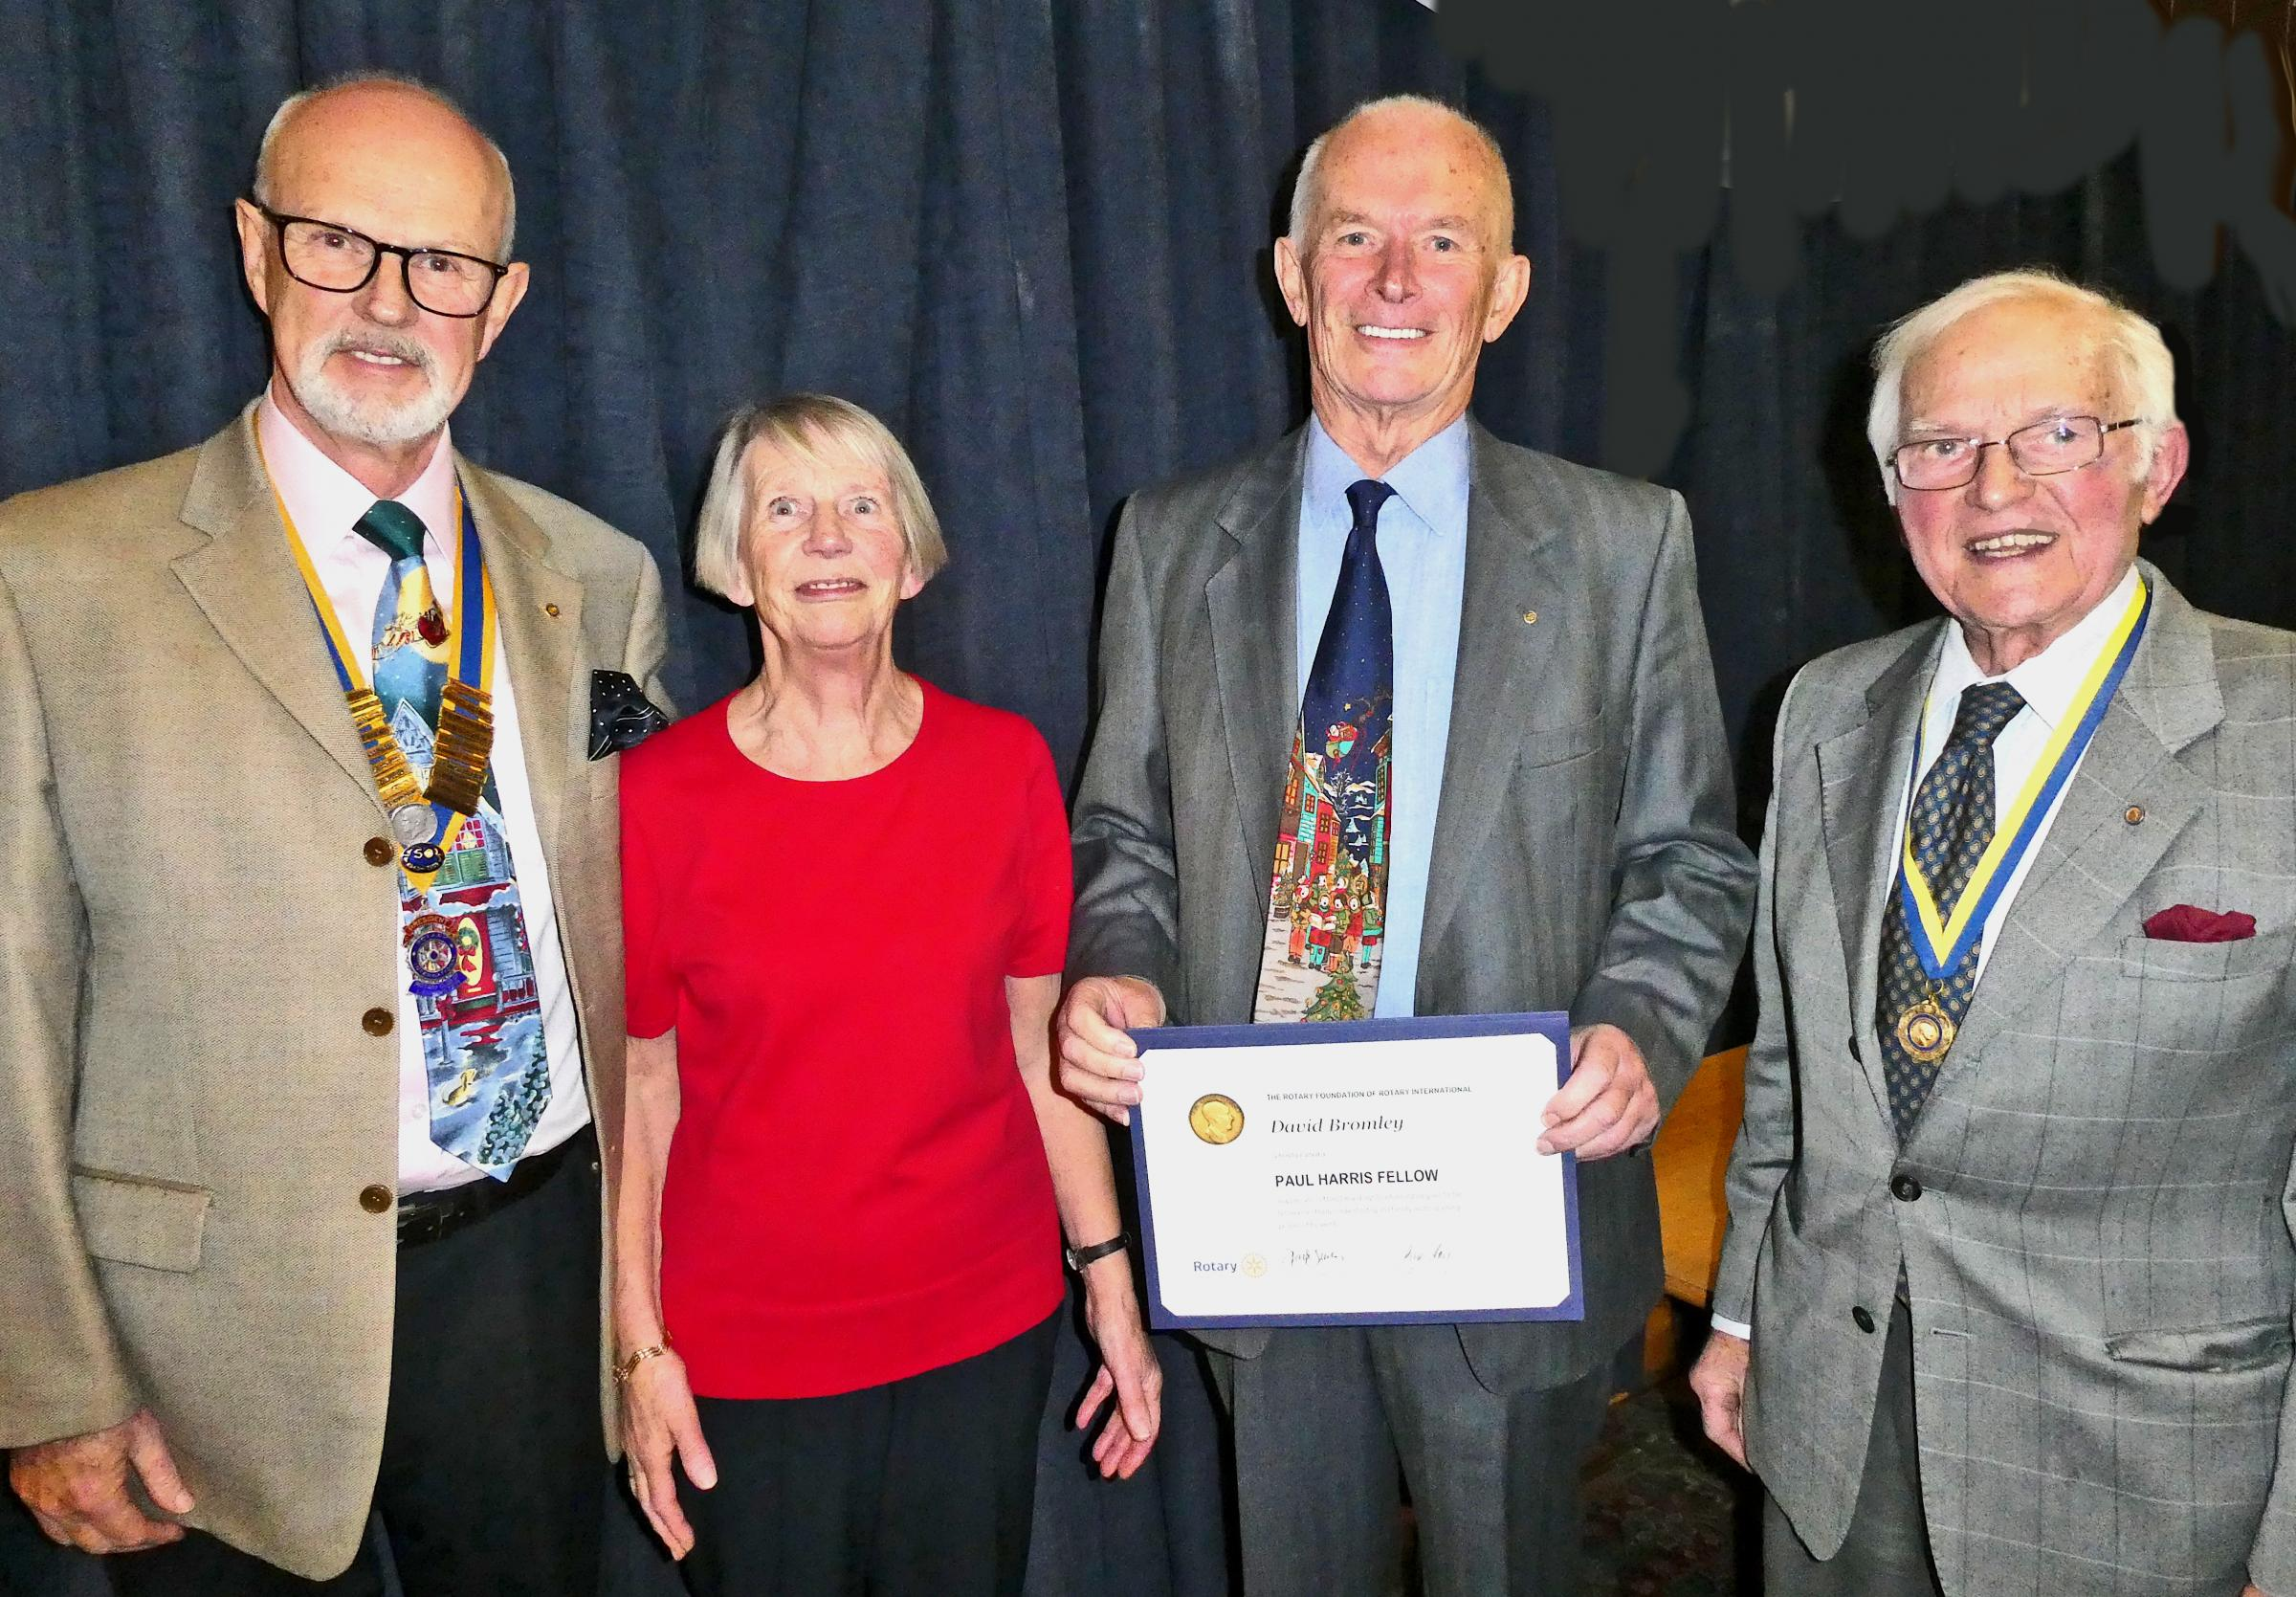 David Bromley with his award, presented by Arthur Davis (right) with Doreen Bromley and President Ian Pedrick looking on